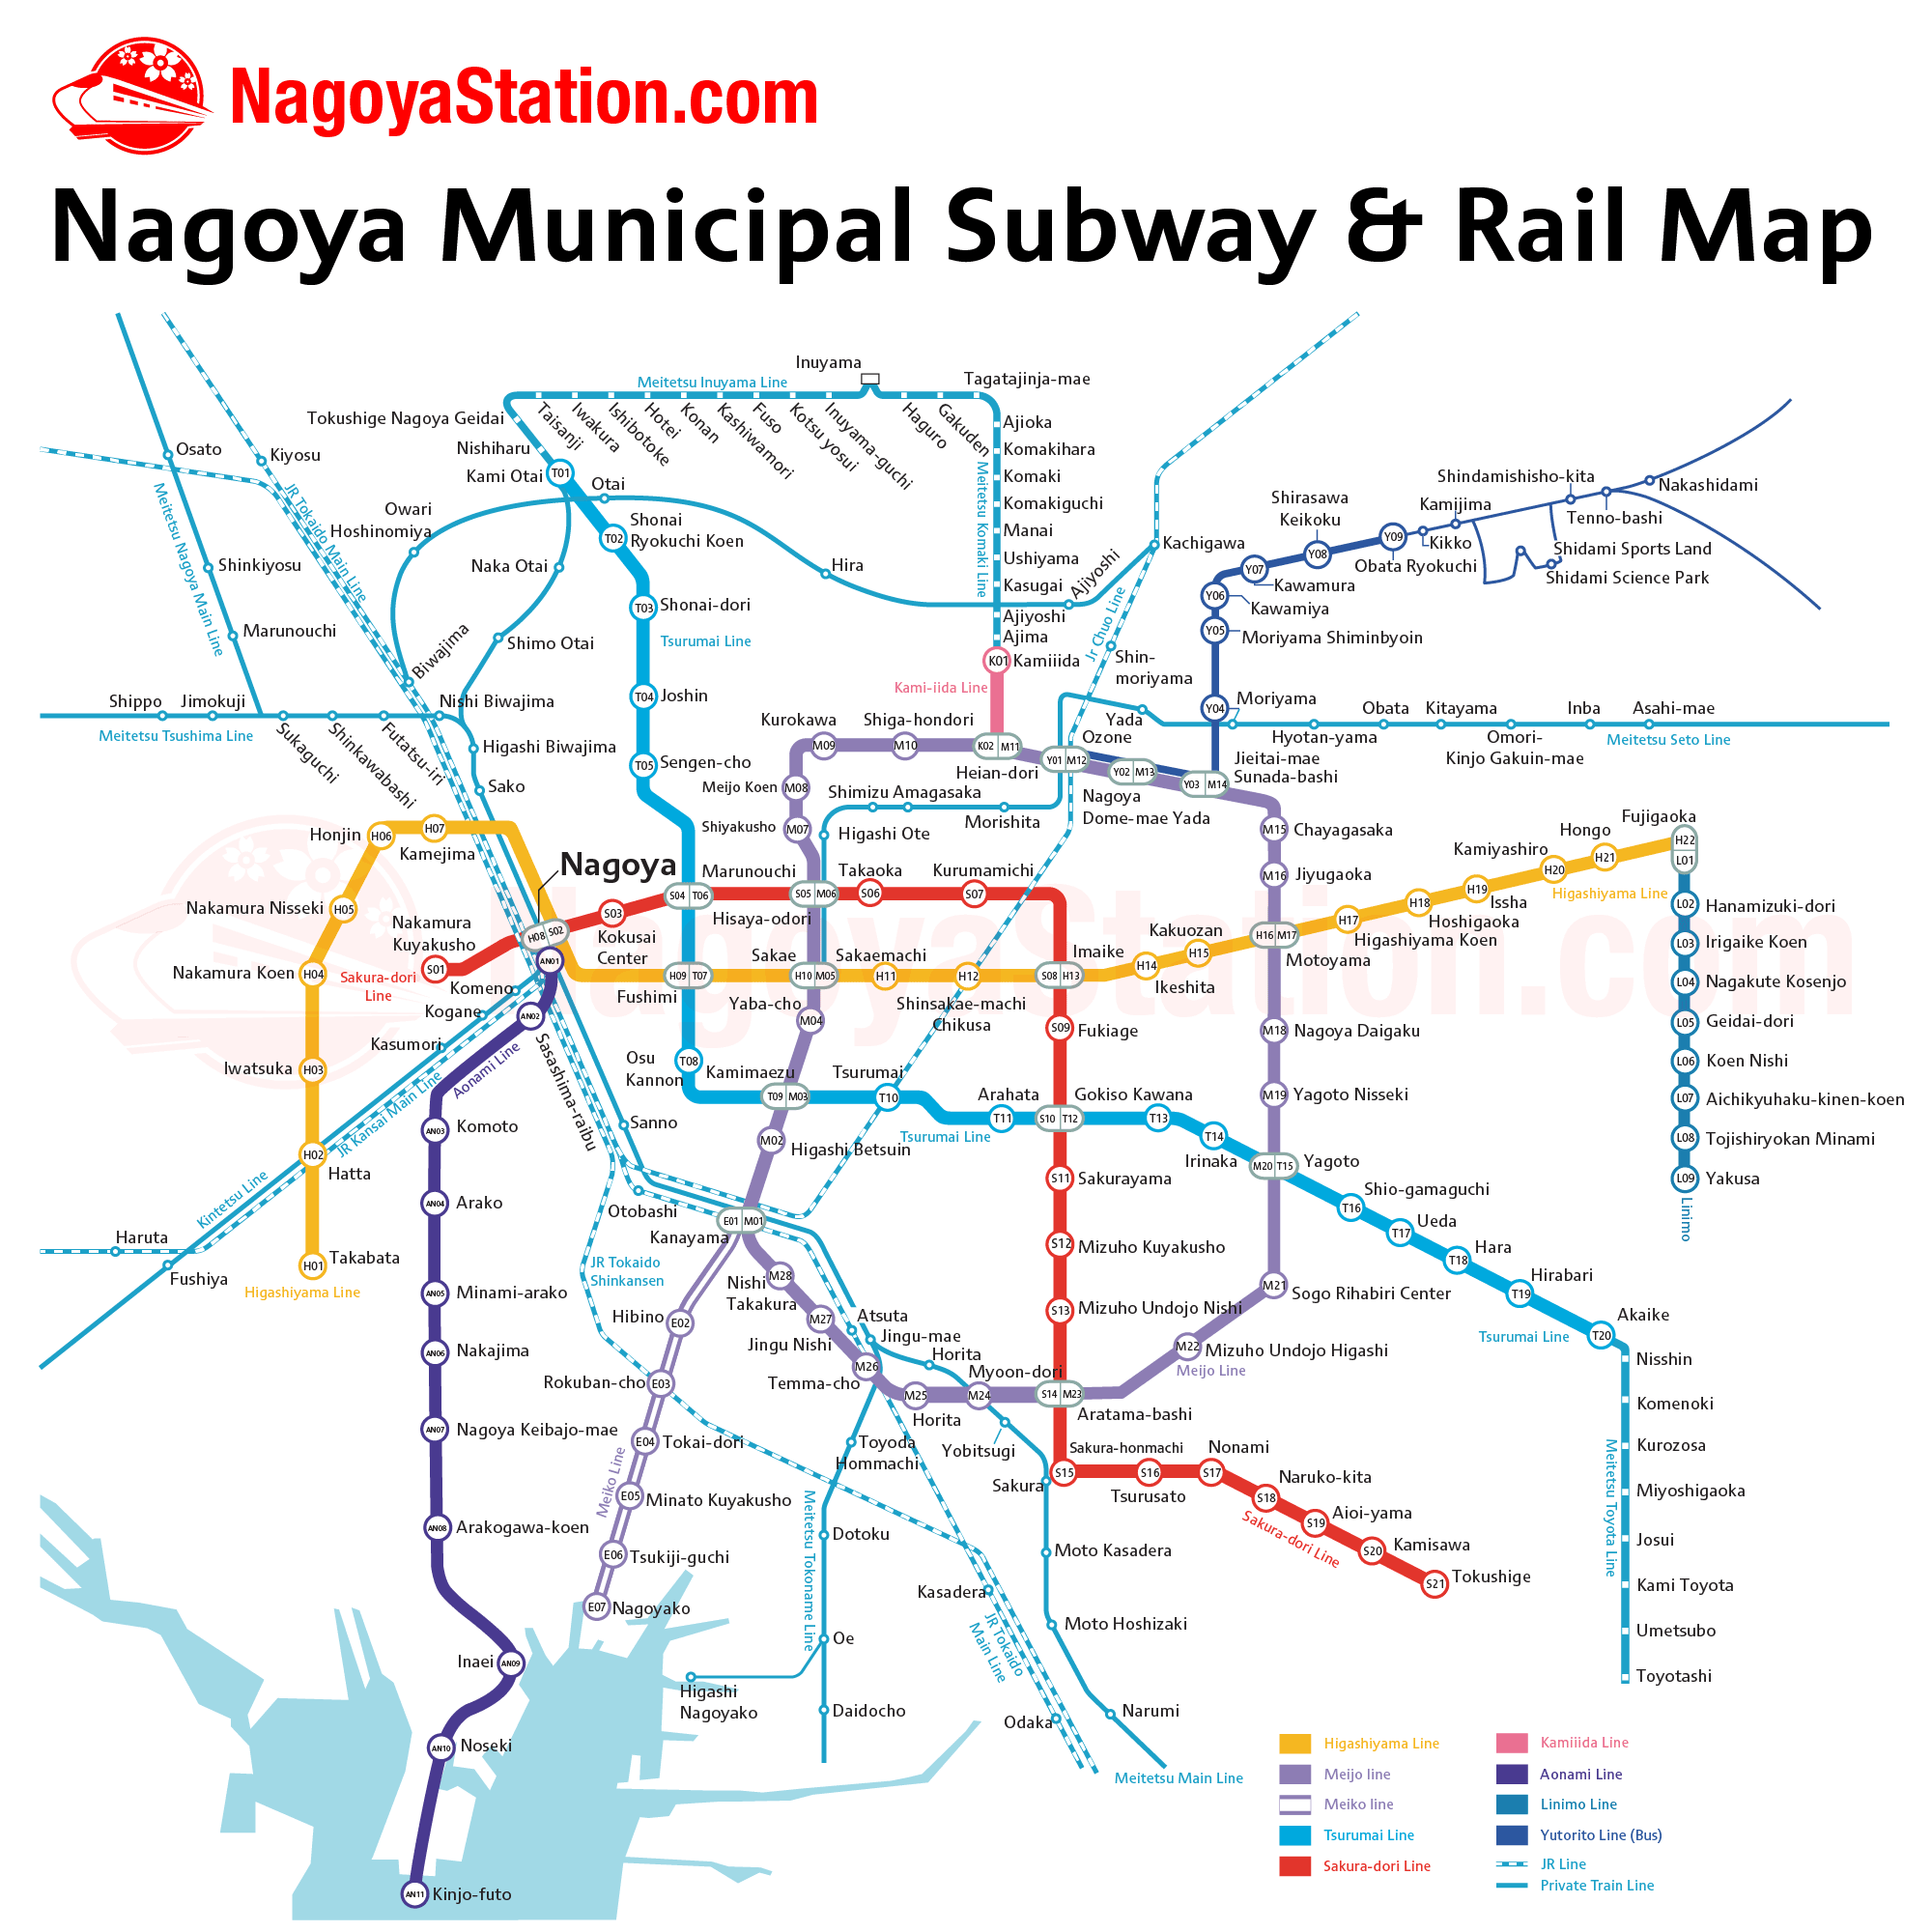 Seoul Subway Map 2018 Pdf.Nagoya Subway Nagoya Station